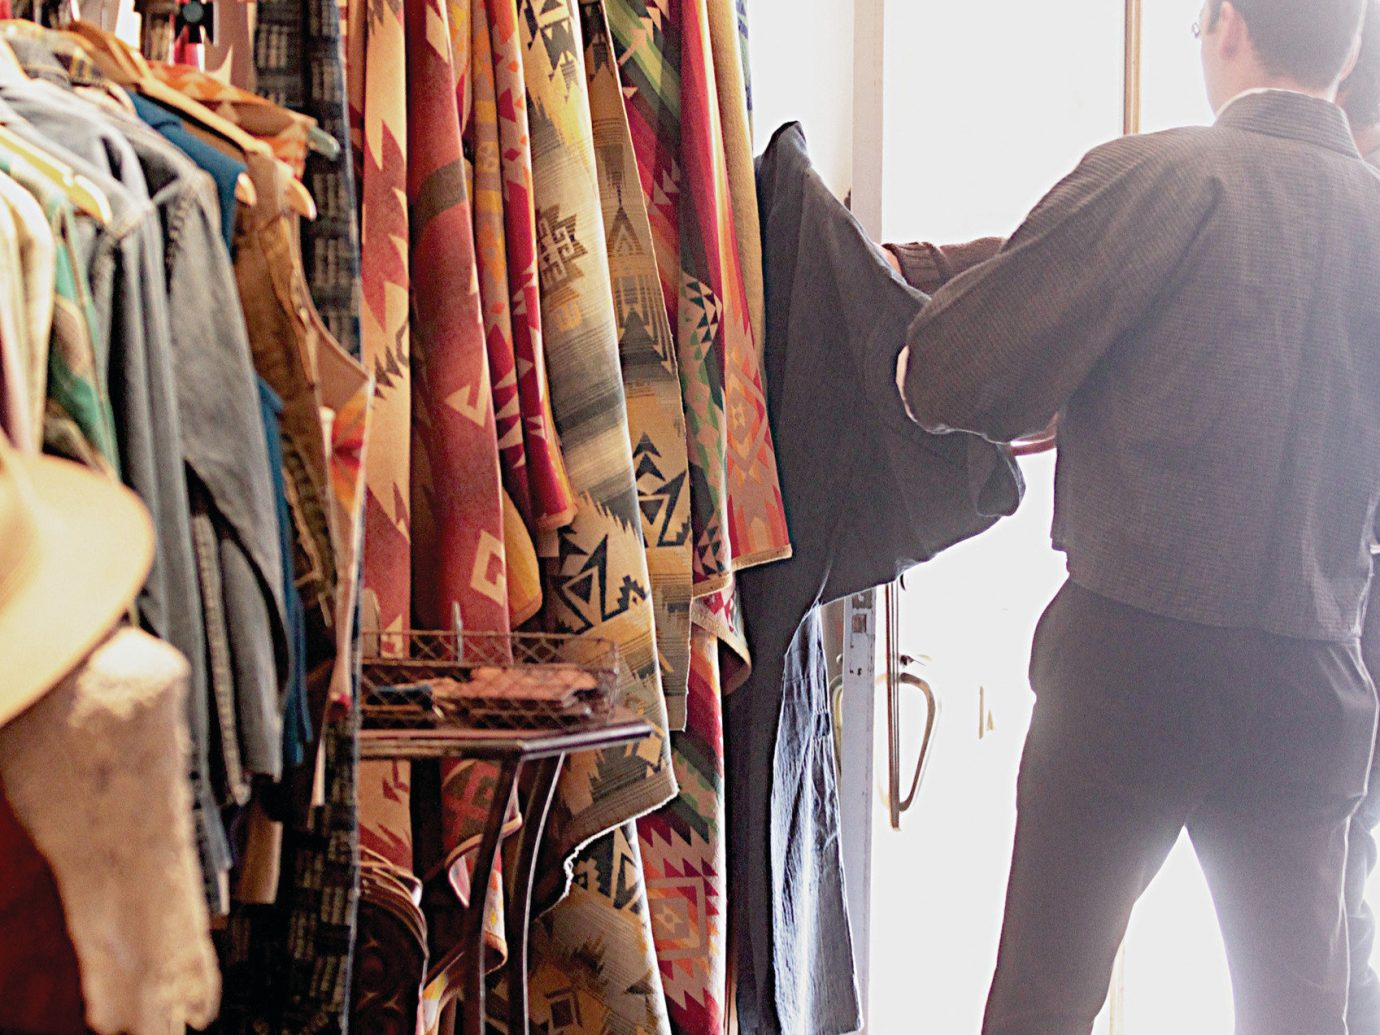 City Influencers + Tastemakers Joshua Tree person clothing indoor room fashion shopping closet